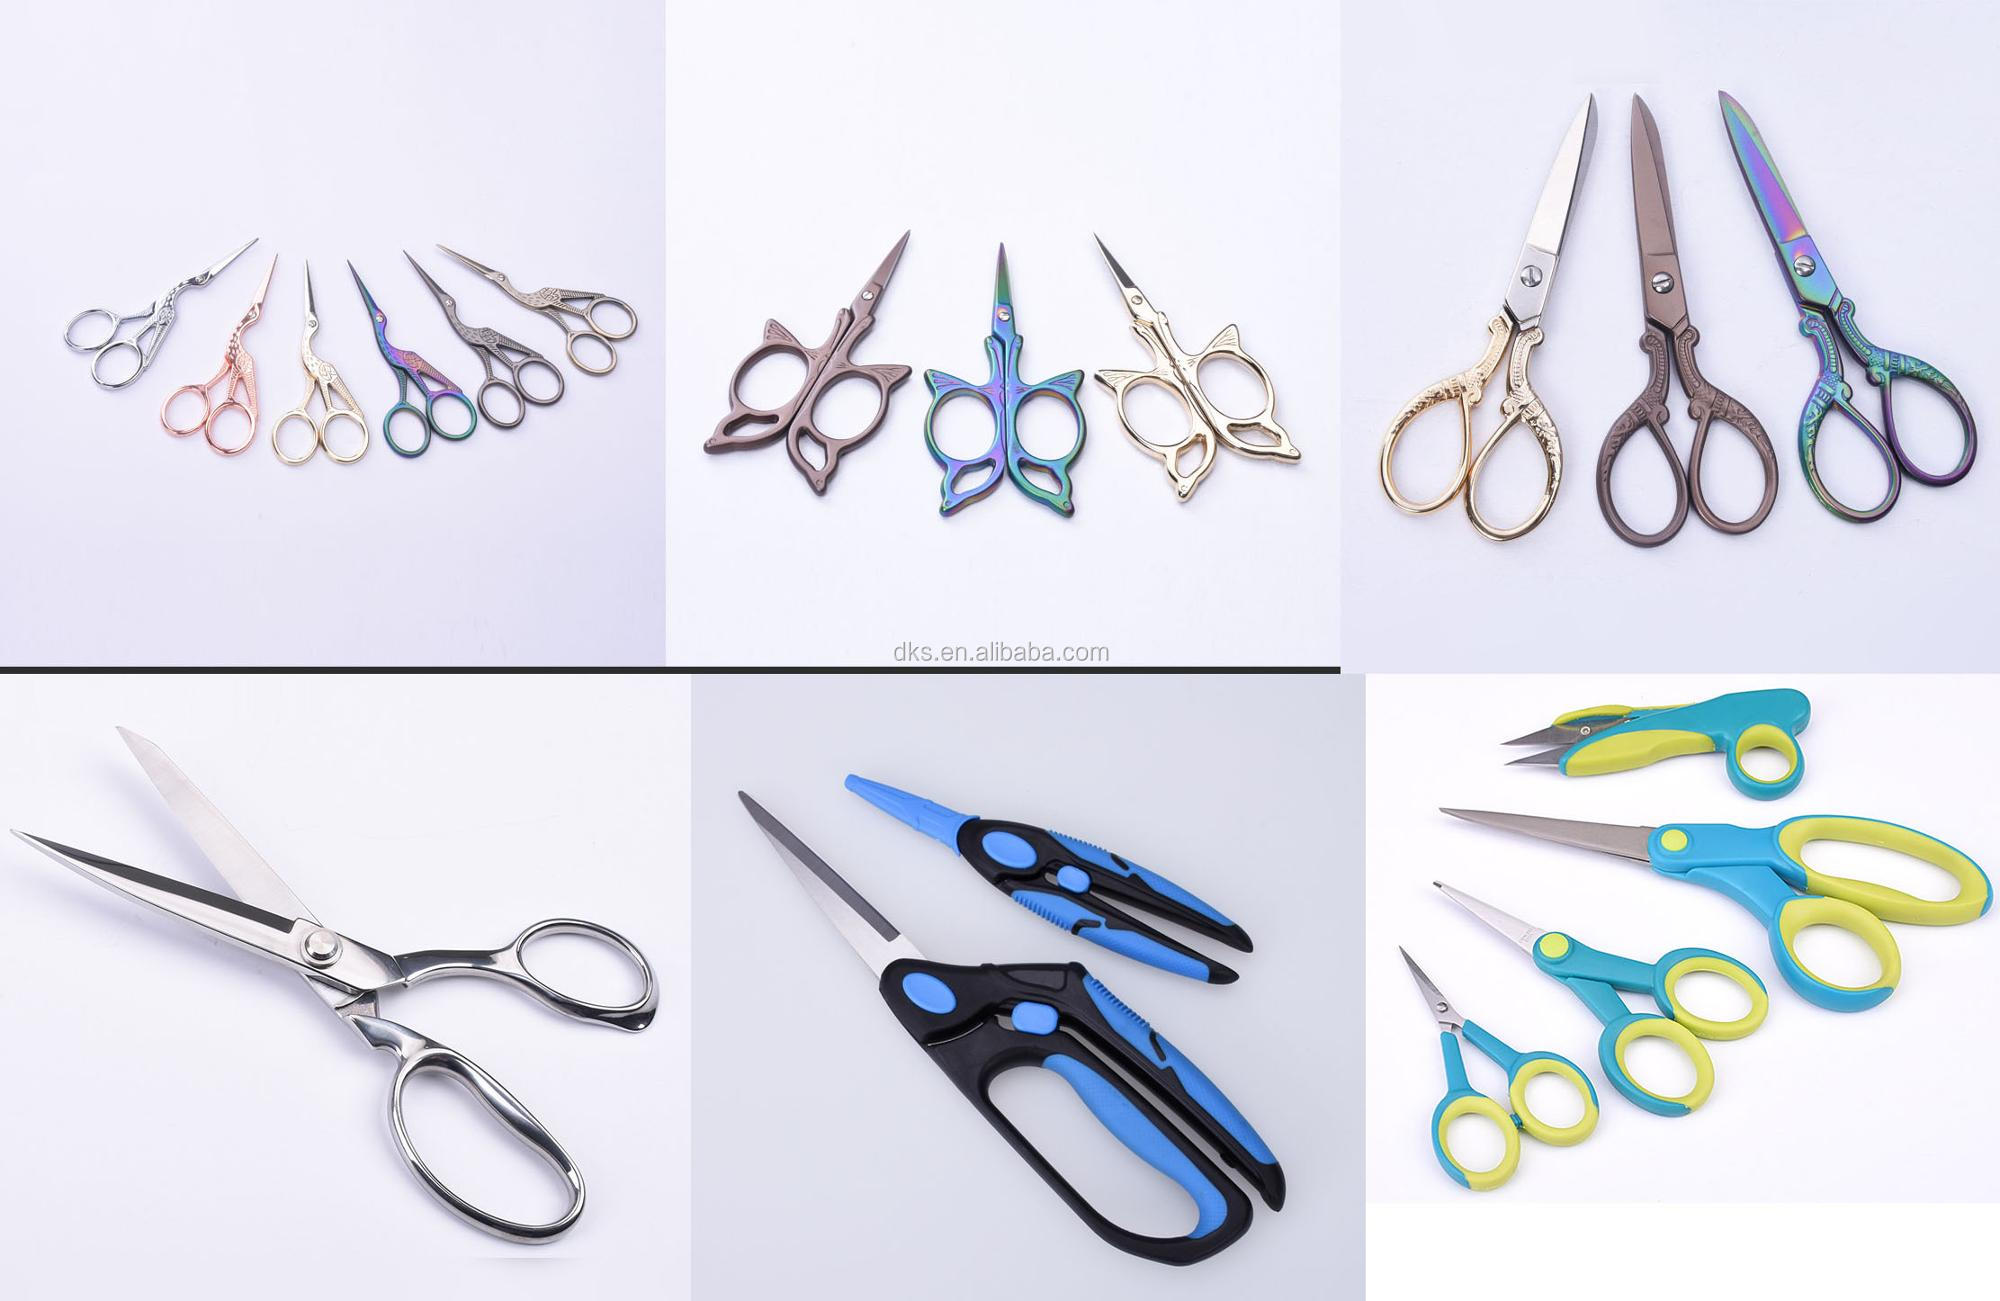 Large and heavy handle   full stainless steel Zig-Zag pinking shears